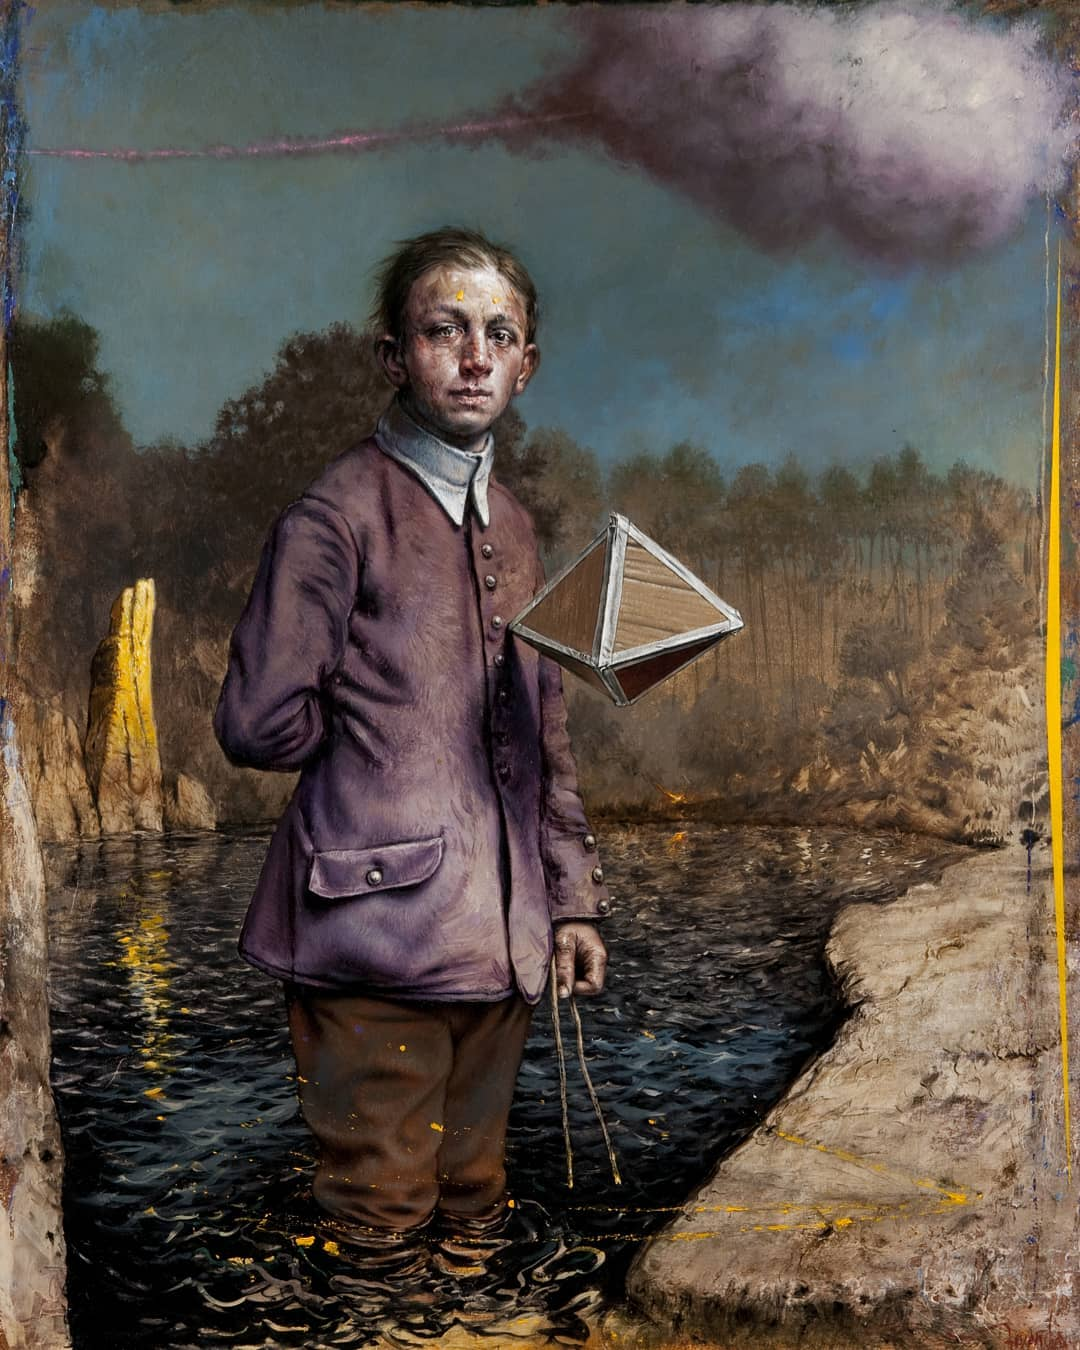 The Magical Realist Portraits of Eddy Stevens